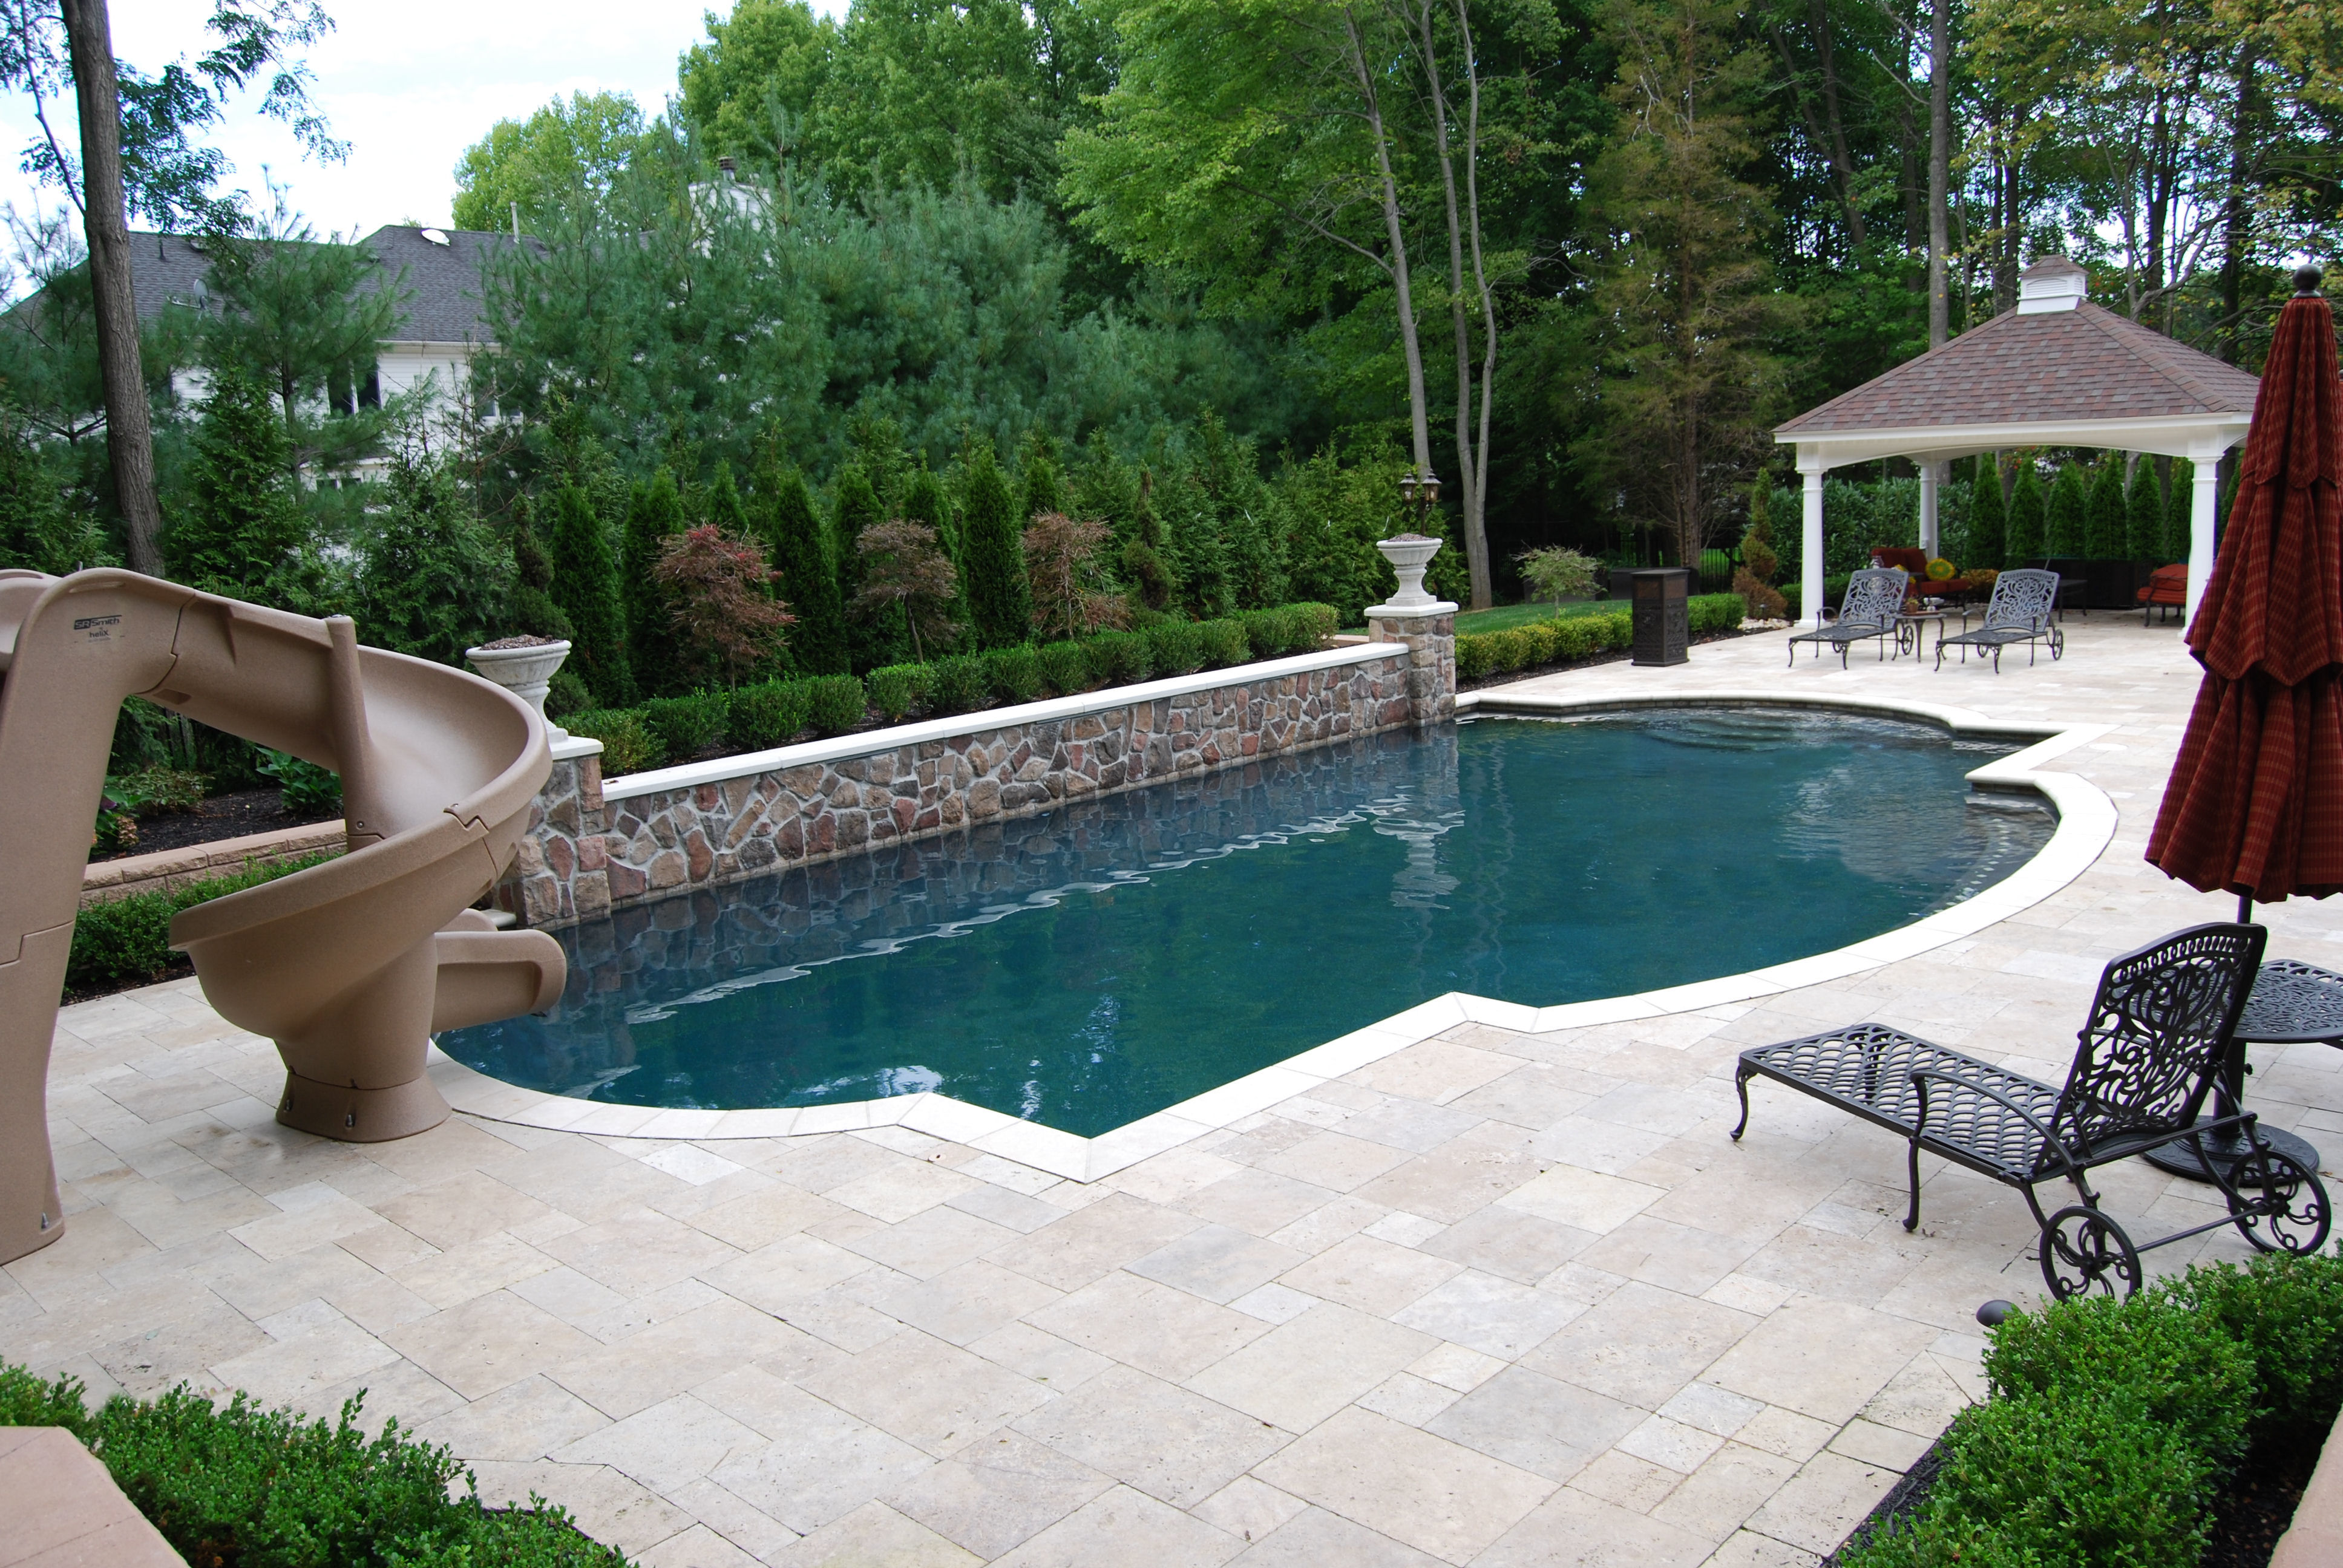 Geometric Pool Designs small geometric pool design Schedule A Free In Home Consultation Today